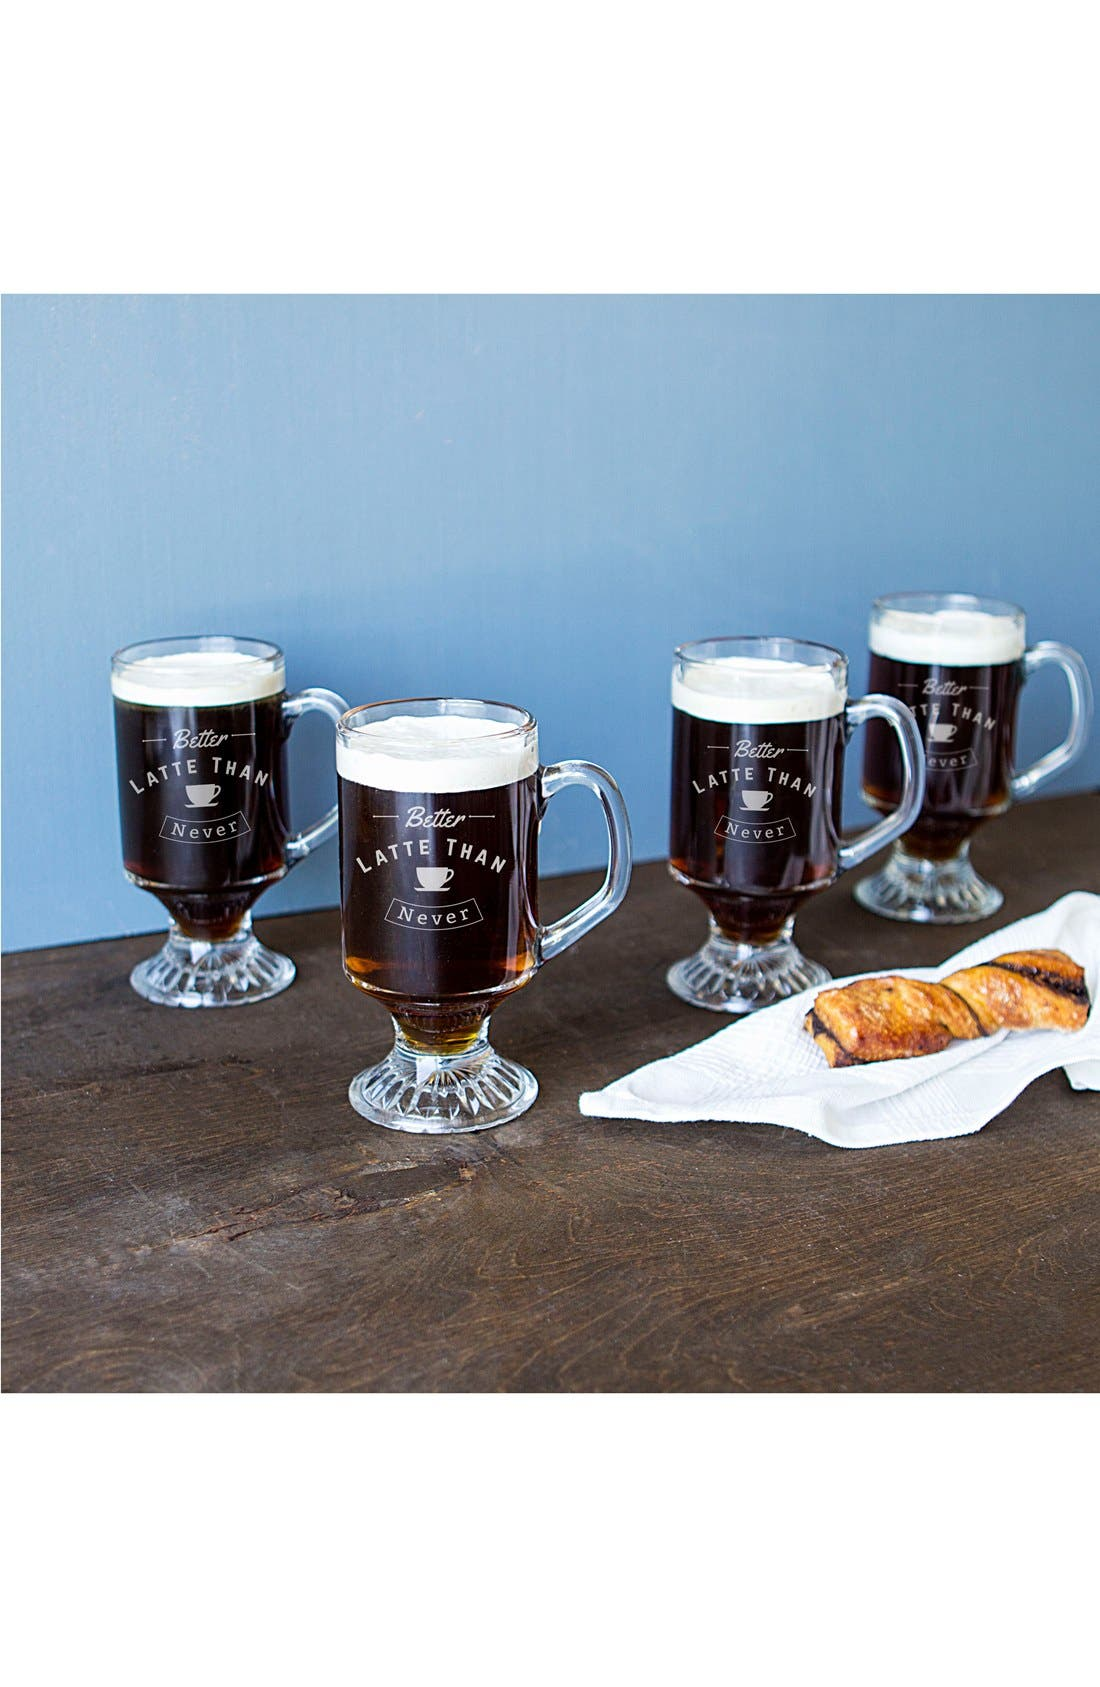 Cathy's Concepts Better Latte Than Never Set of 4 Glass Mugs